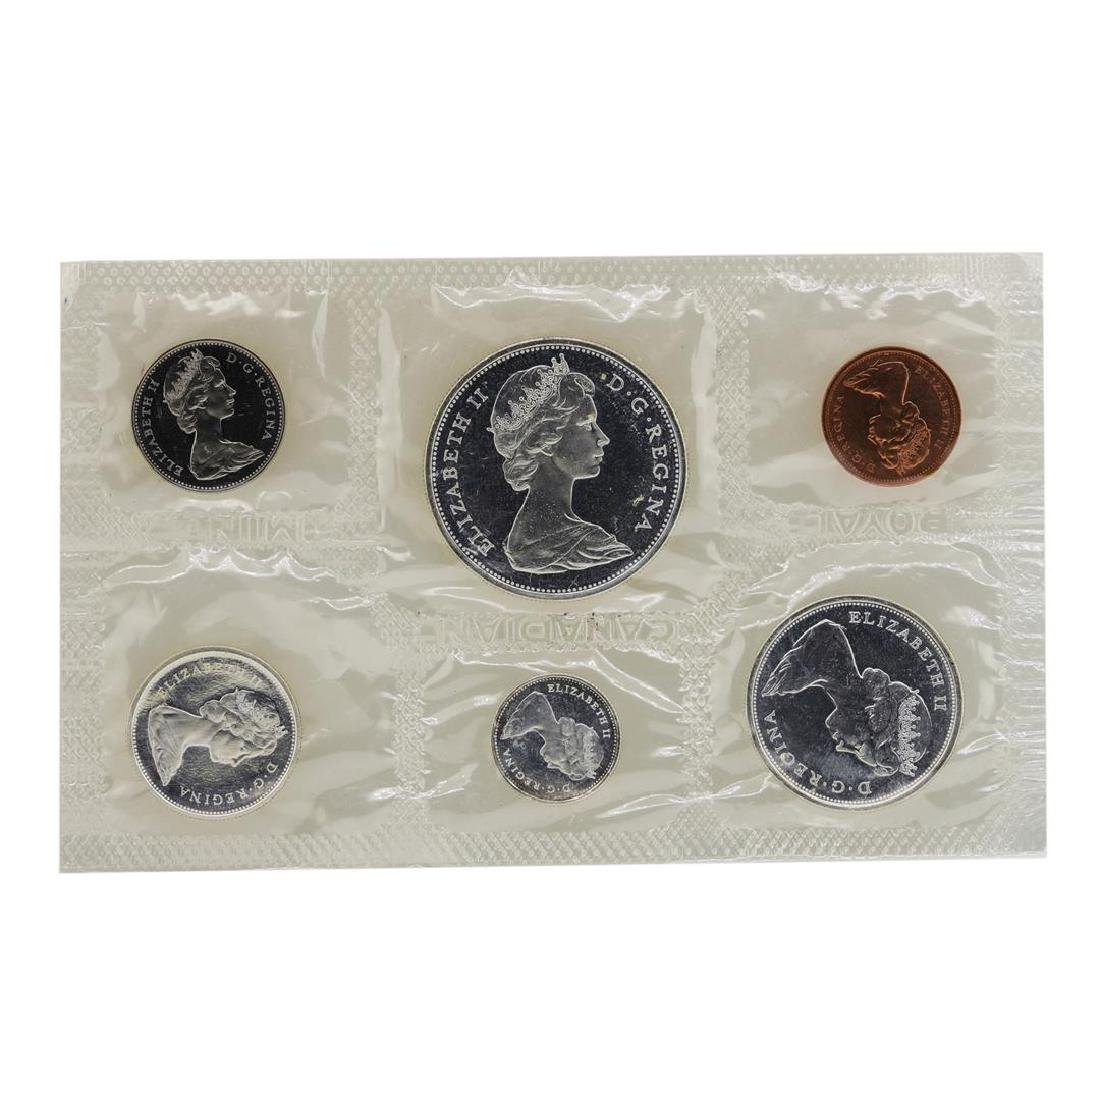 Lot of 1965-1967 Canada (6) Coin Proof Sets w/ Envelope - 2